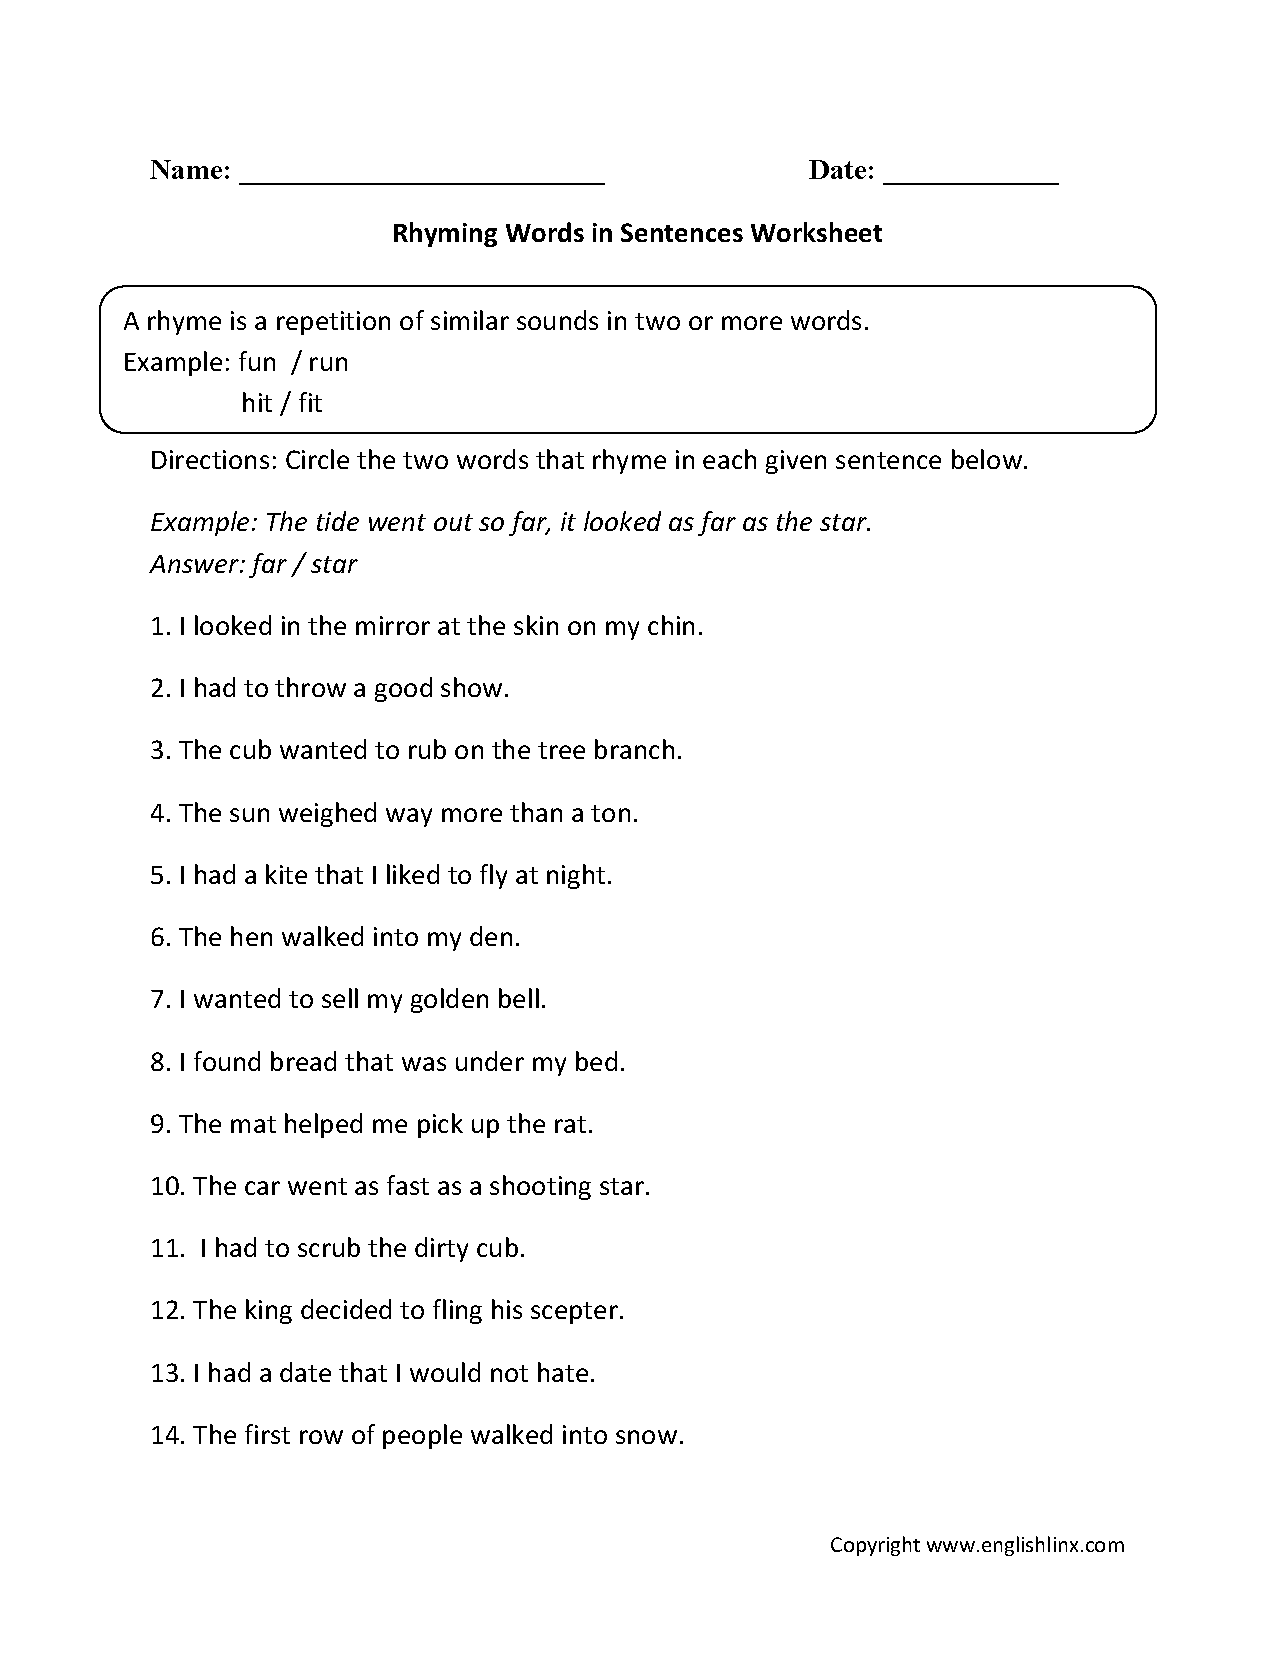 worksheet Conjunctive Adverbs Worksheets rhyming words in sentences worksheet school pinterest worksheet